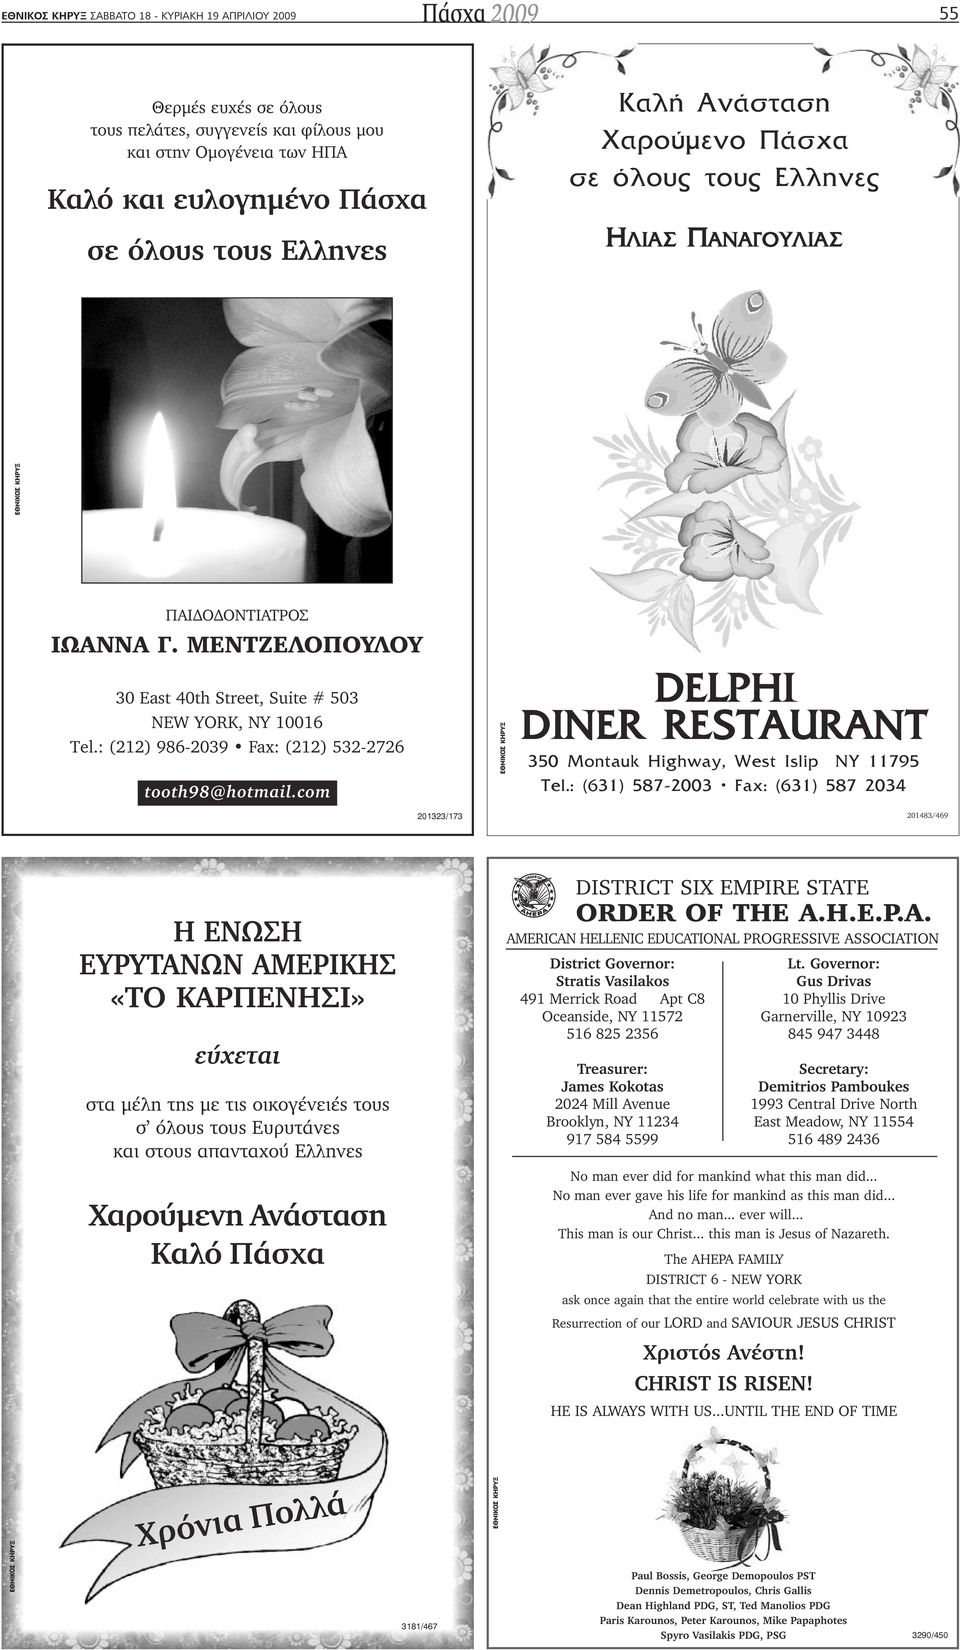 : (212) 986-2039 Fax: (212) 532-2726 tooth98@hotmail.com DELPHI DINER RESTAURANT 350 Montauk Highway, West Islip NY 11795 Tel.